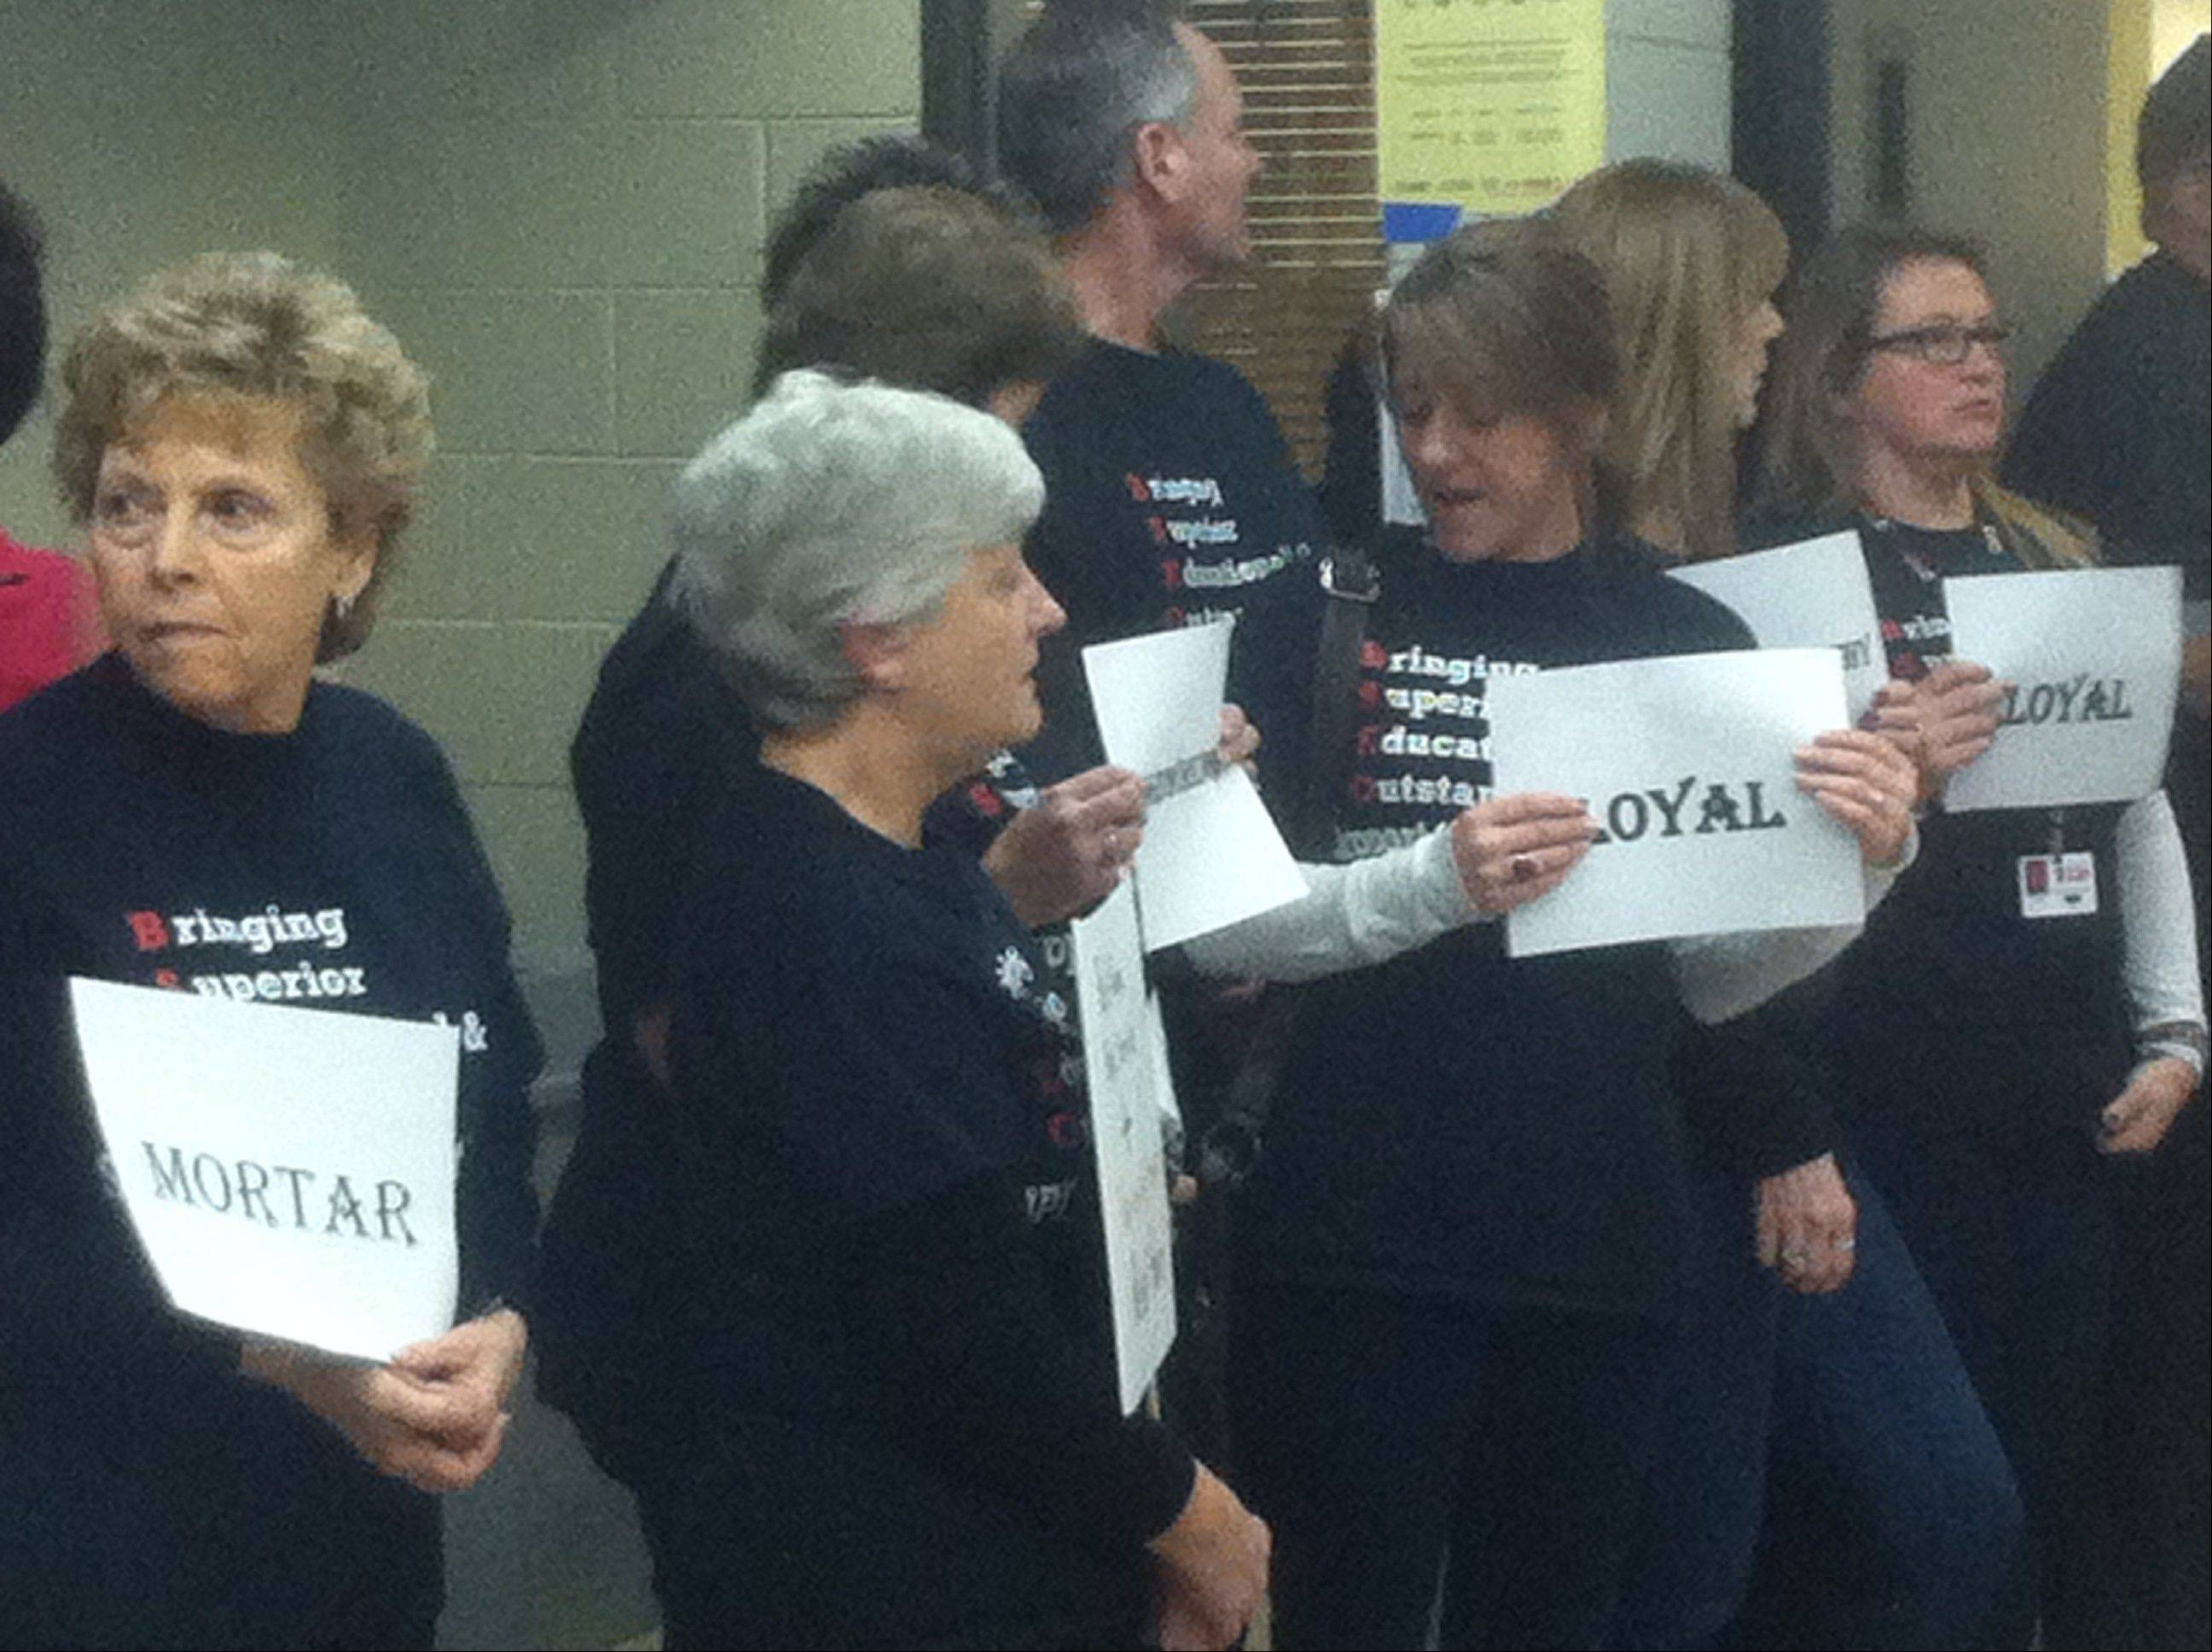 Members of the Barrington School Employees Organization protested their lack of a contract outside the Barrington Unit District 220 Board of Education meeting Tuesday night. The two sides have been negotiating for a new deal since May, and are now in federal mediation trying to reach an agreement.